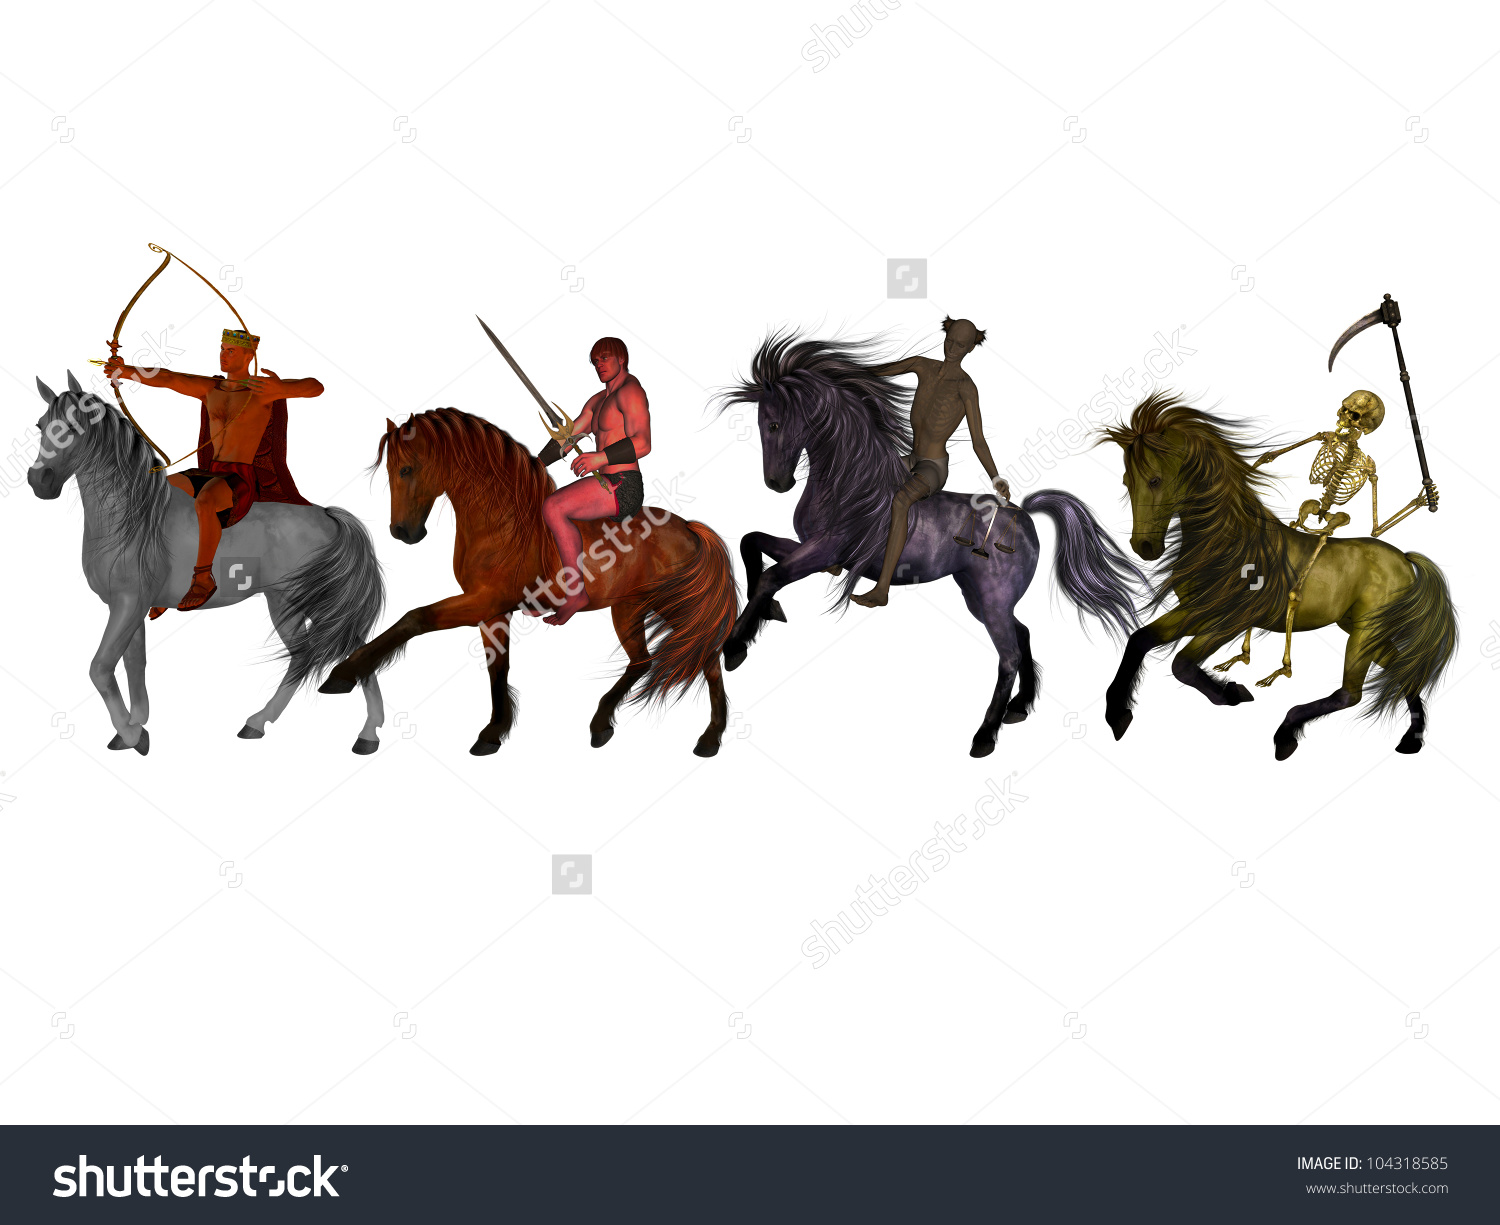 Four Horsemen Of The Apocalypse clipart #17, Download drawings